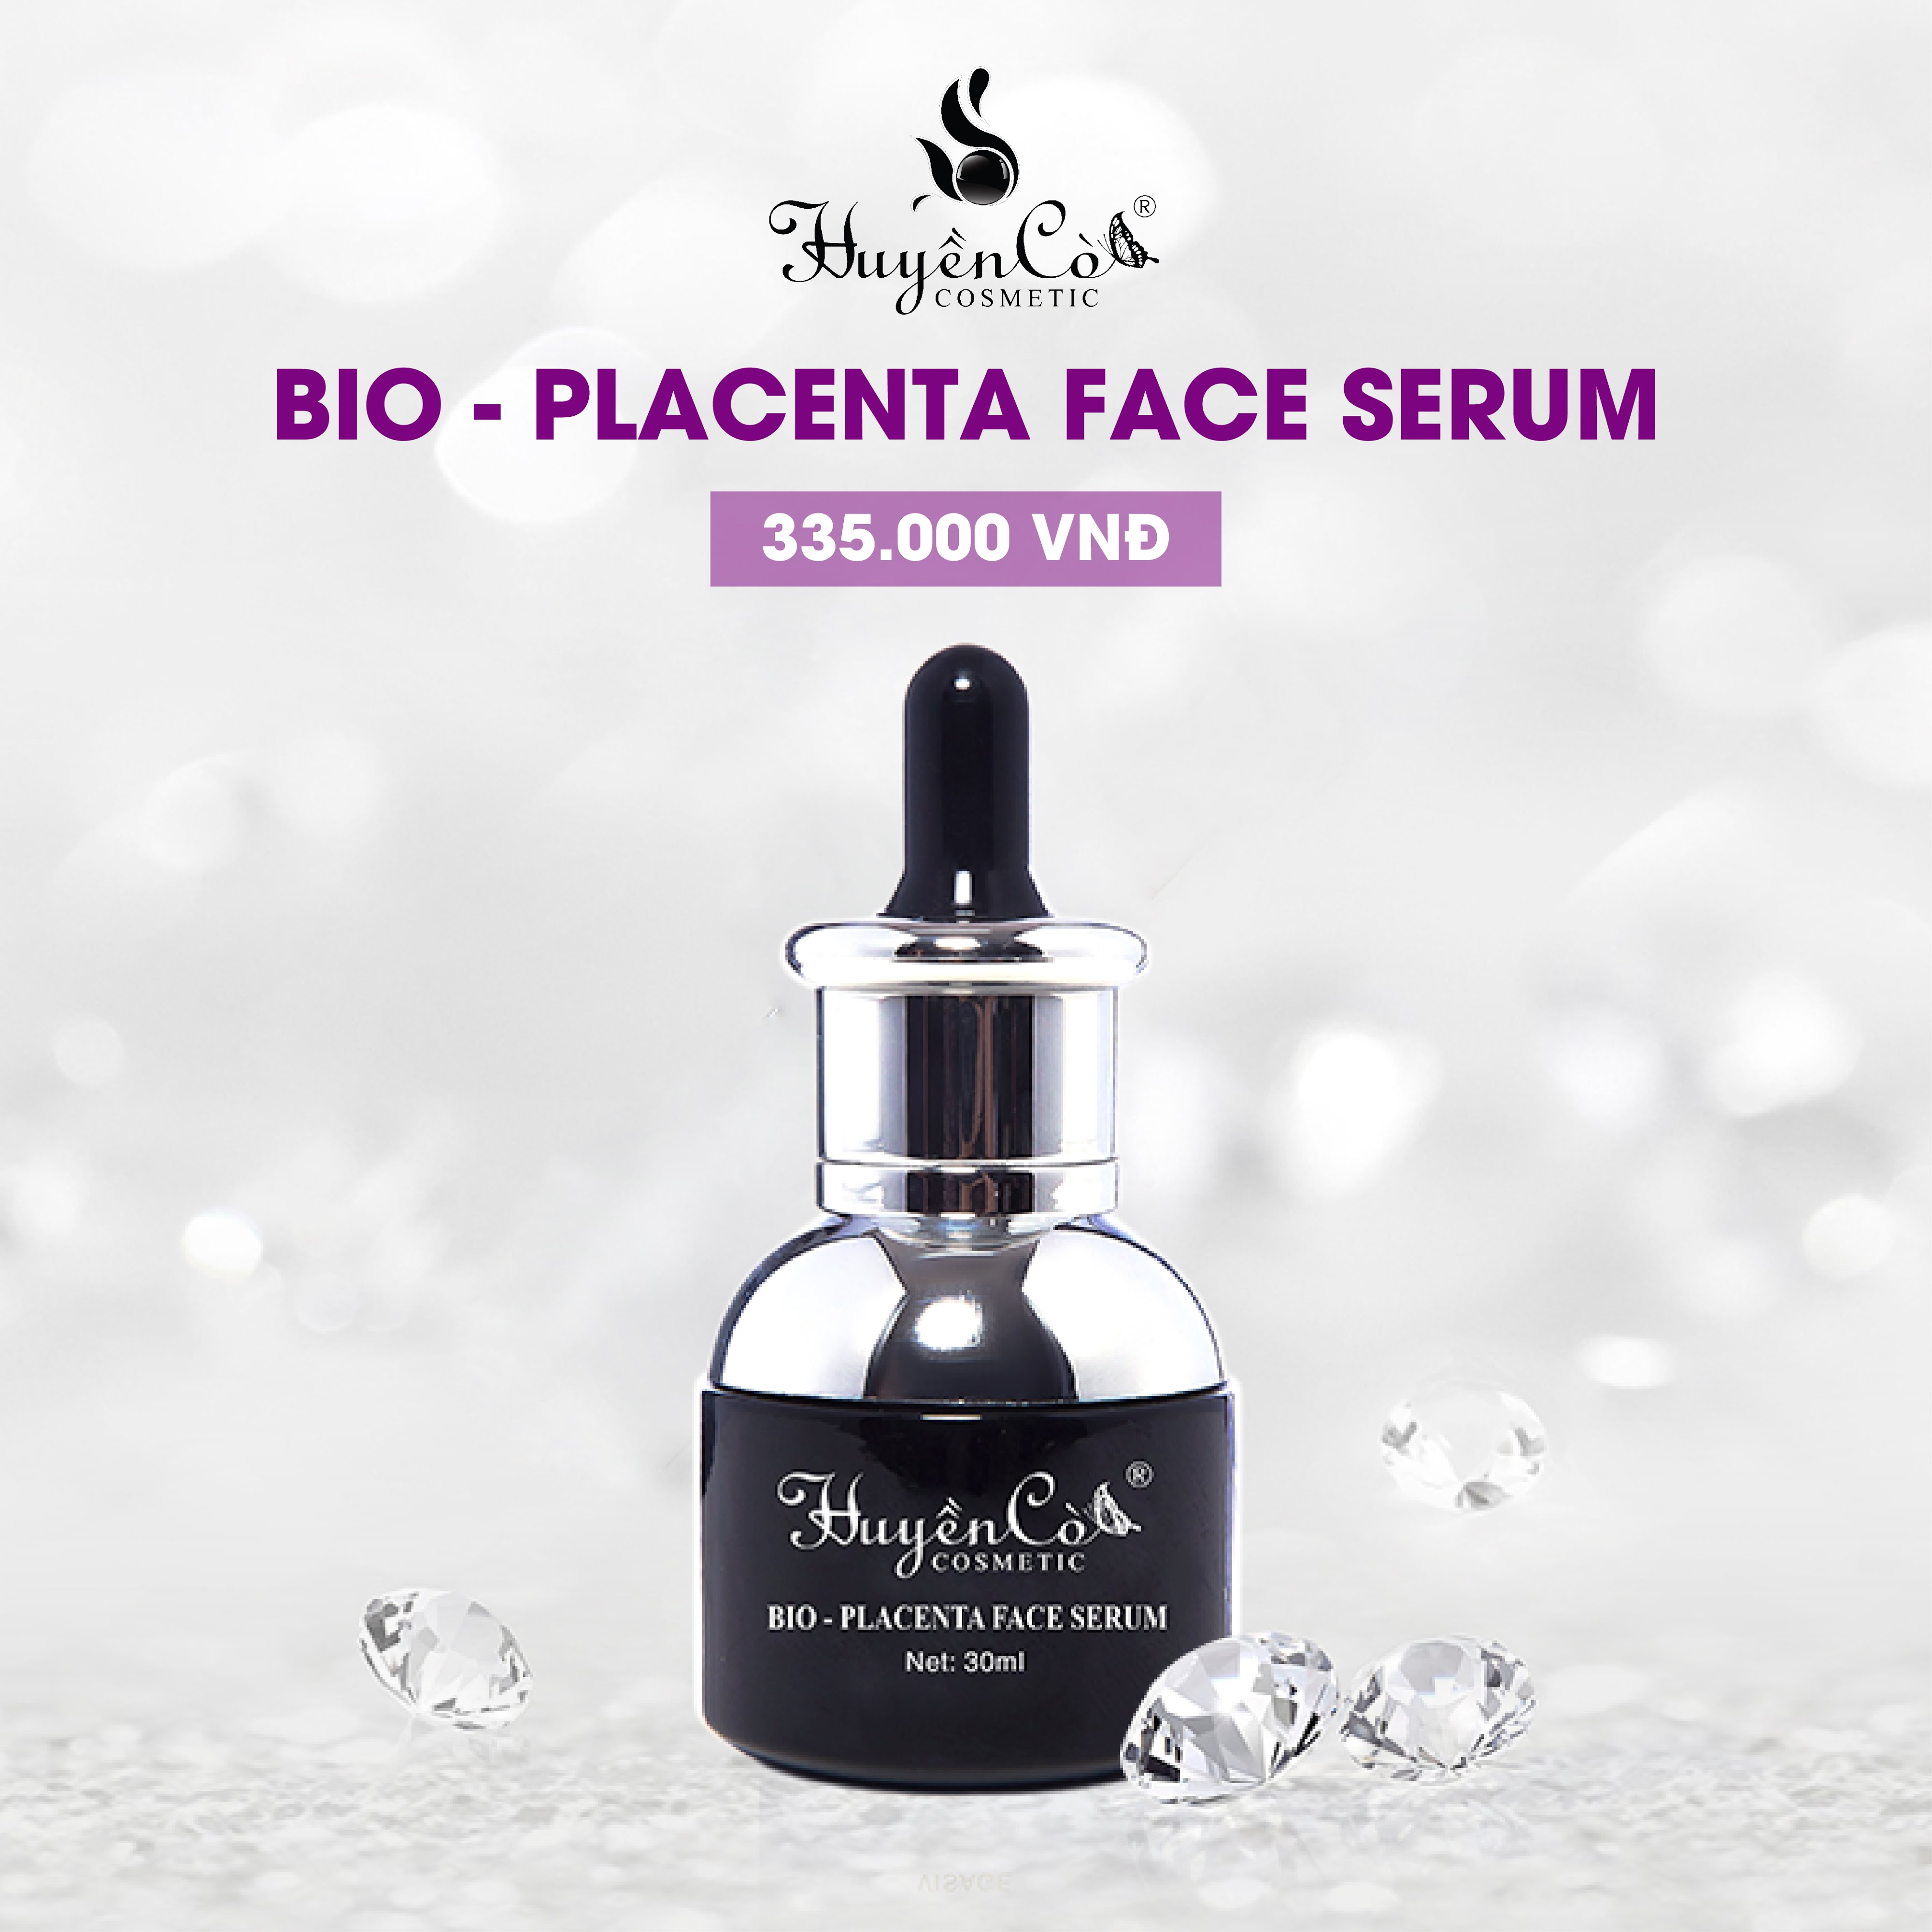 BIO-PLACENTA FACE SERUM